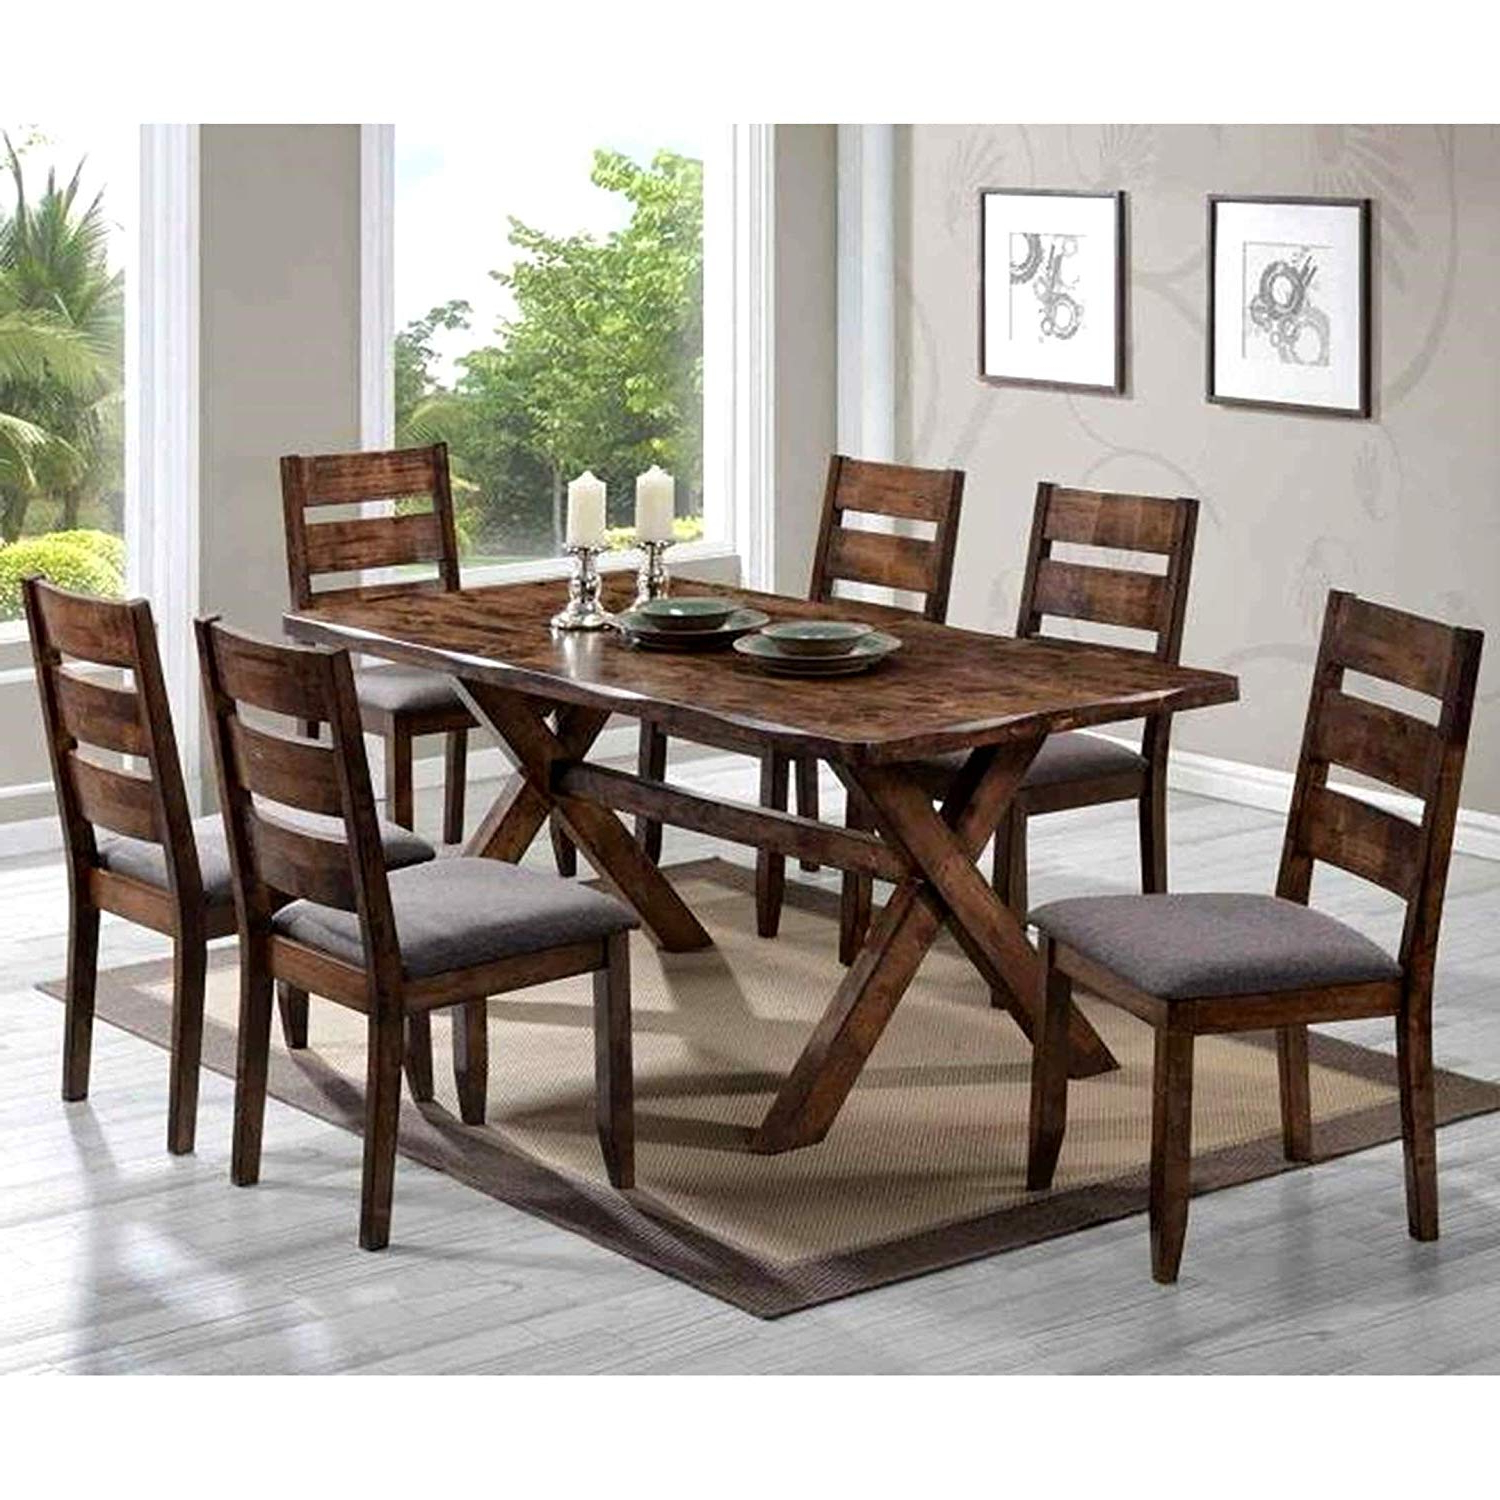 Small Rustic Look Dining Tables With Regard To Newest Amazon – A Line Furniture Milano Rustic Knotty Shaped (View 20 of 25)